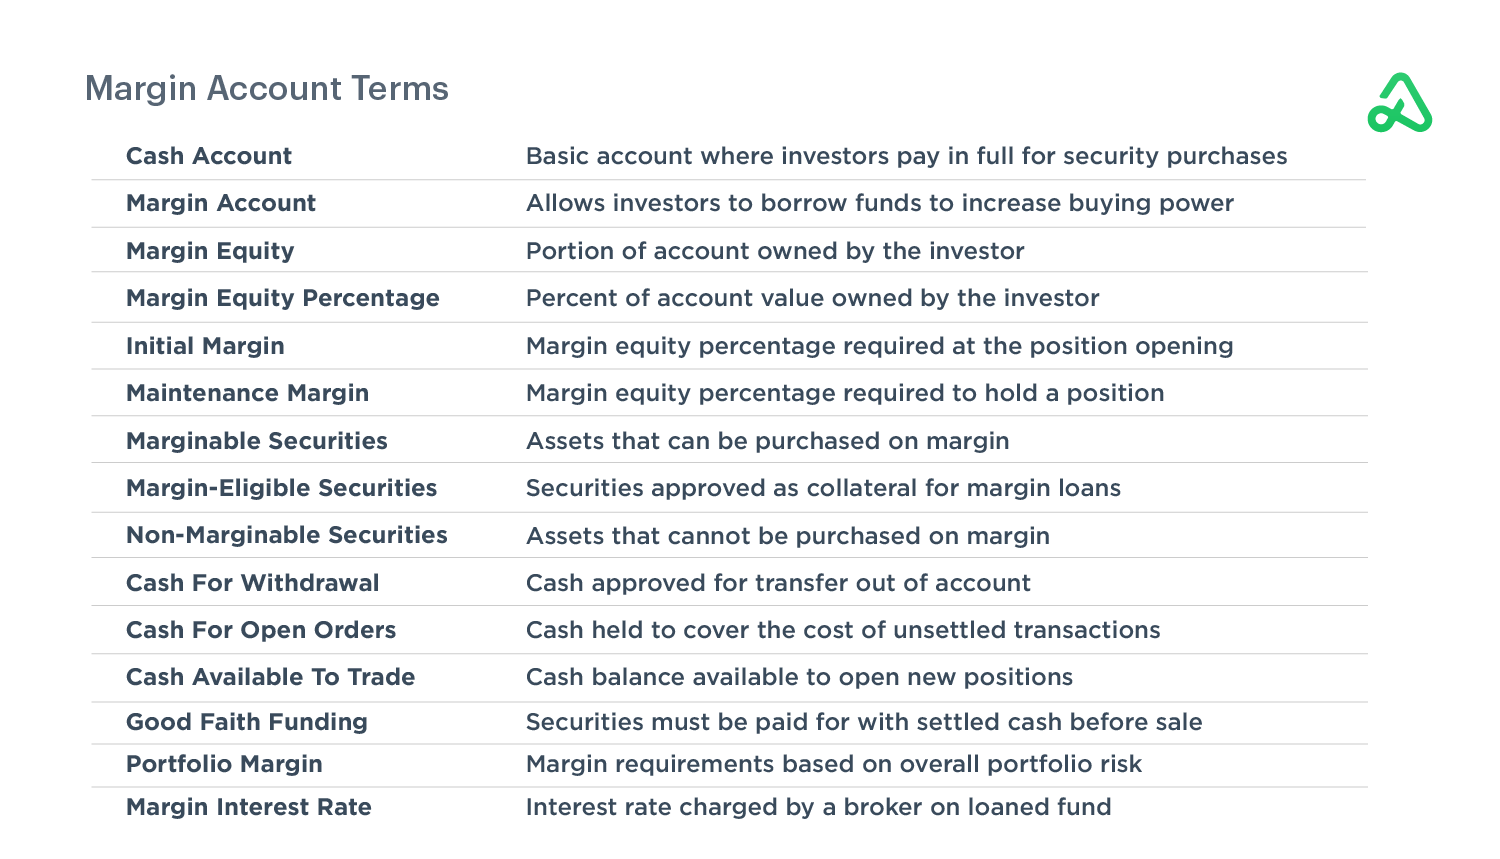 Margin Account Terms Defined